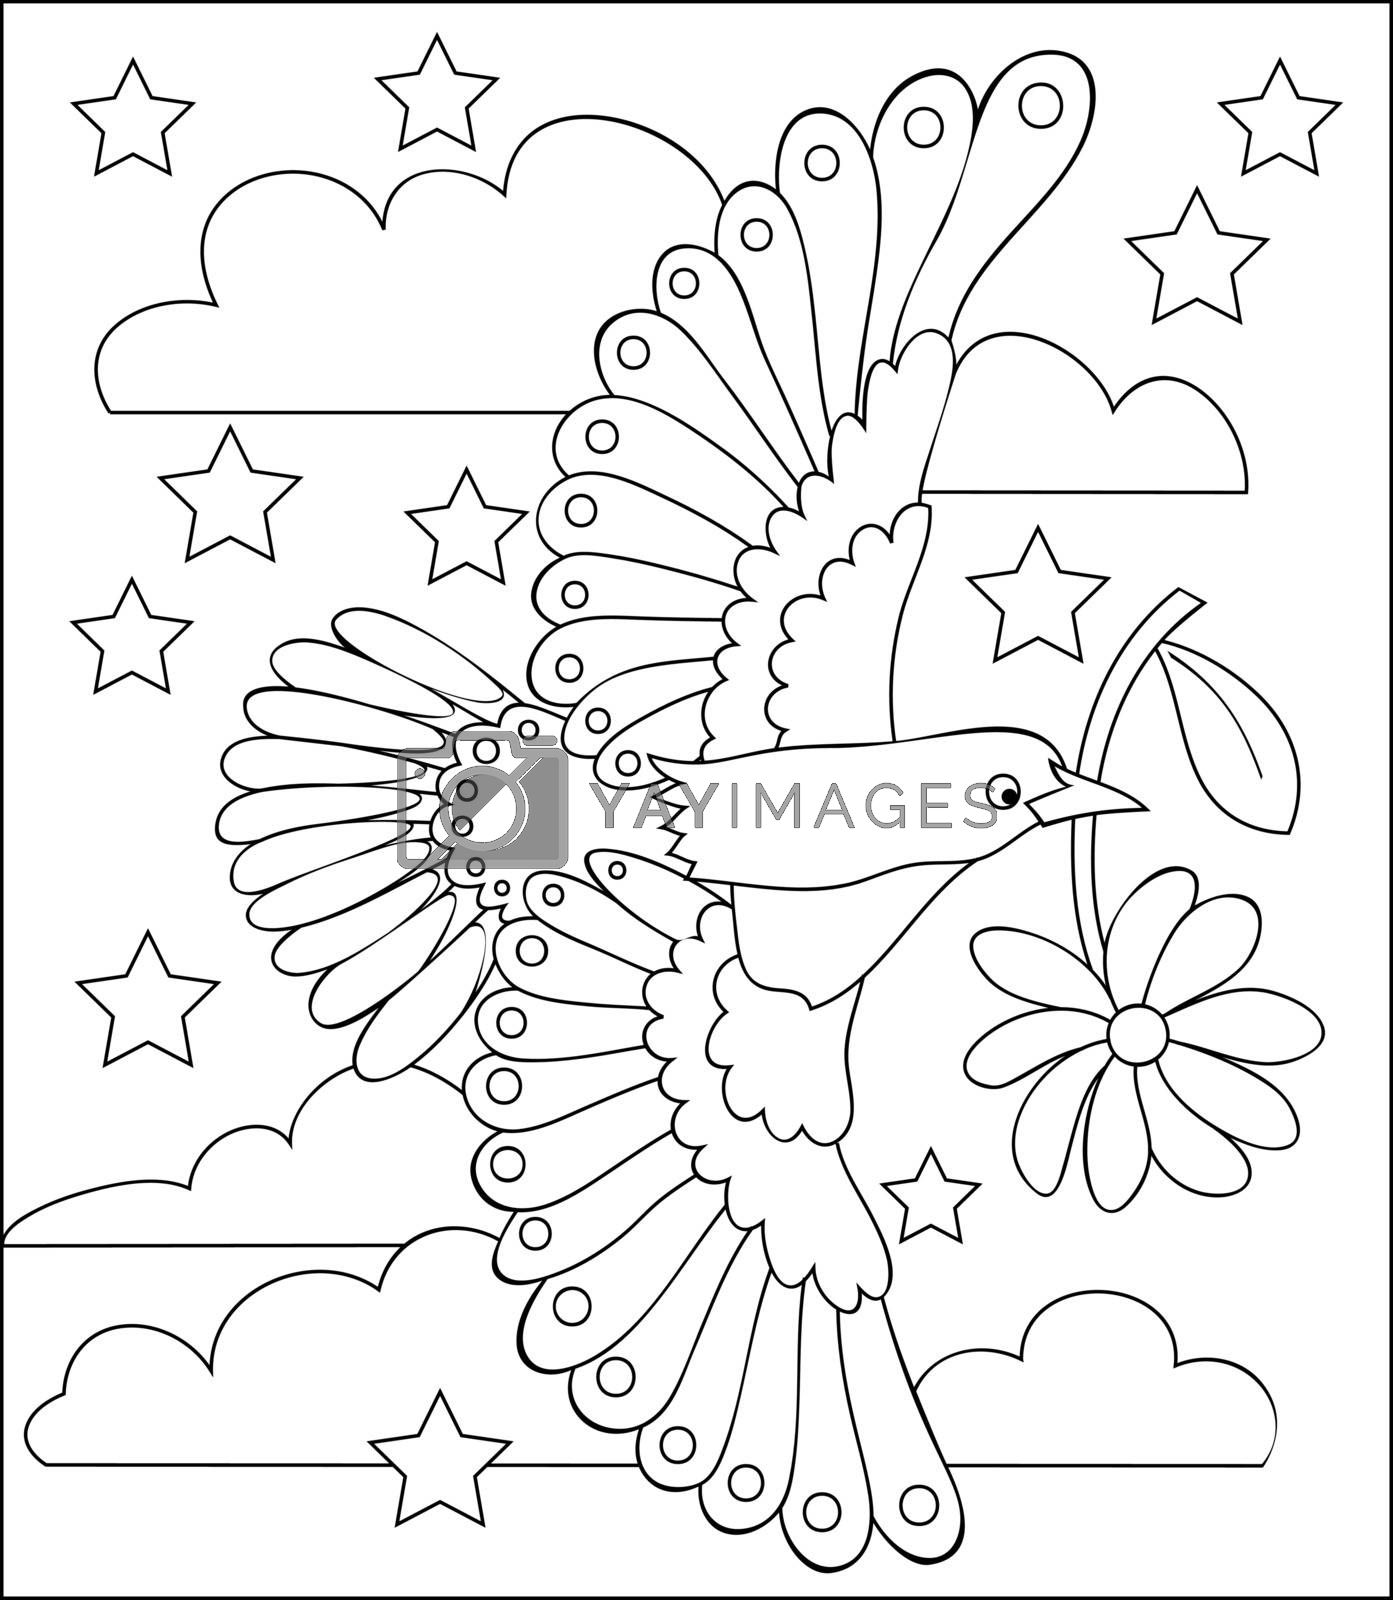 Page with black and white illustration of flying bird for coloring. Developing children skills for drawing. Vector image.